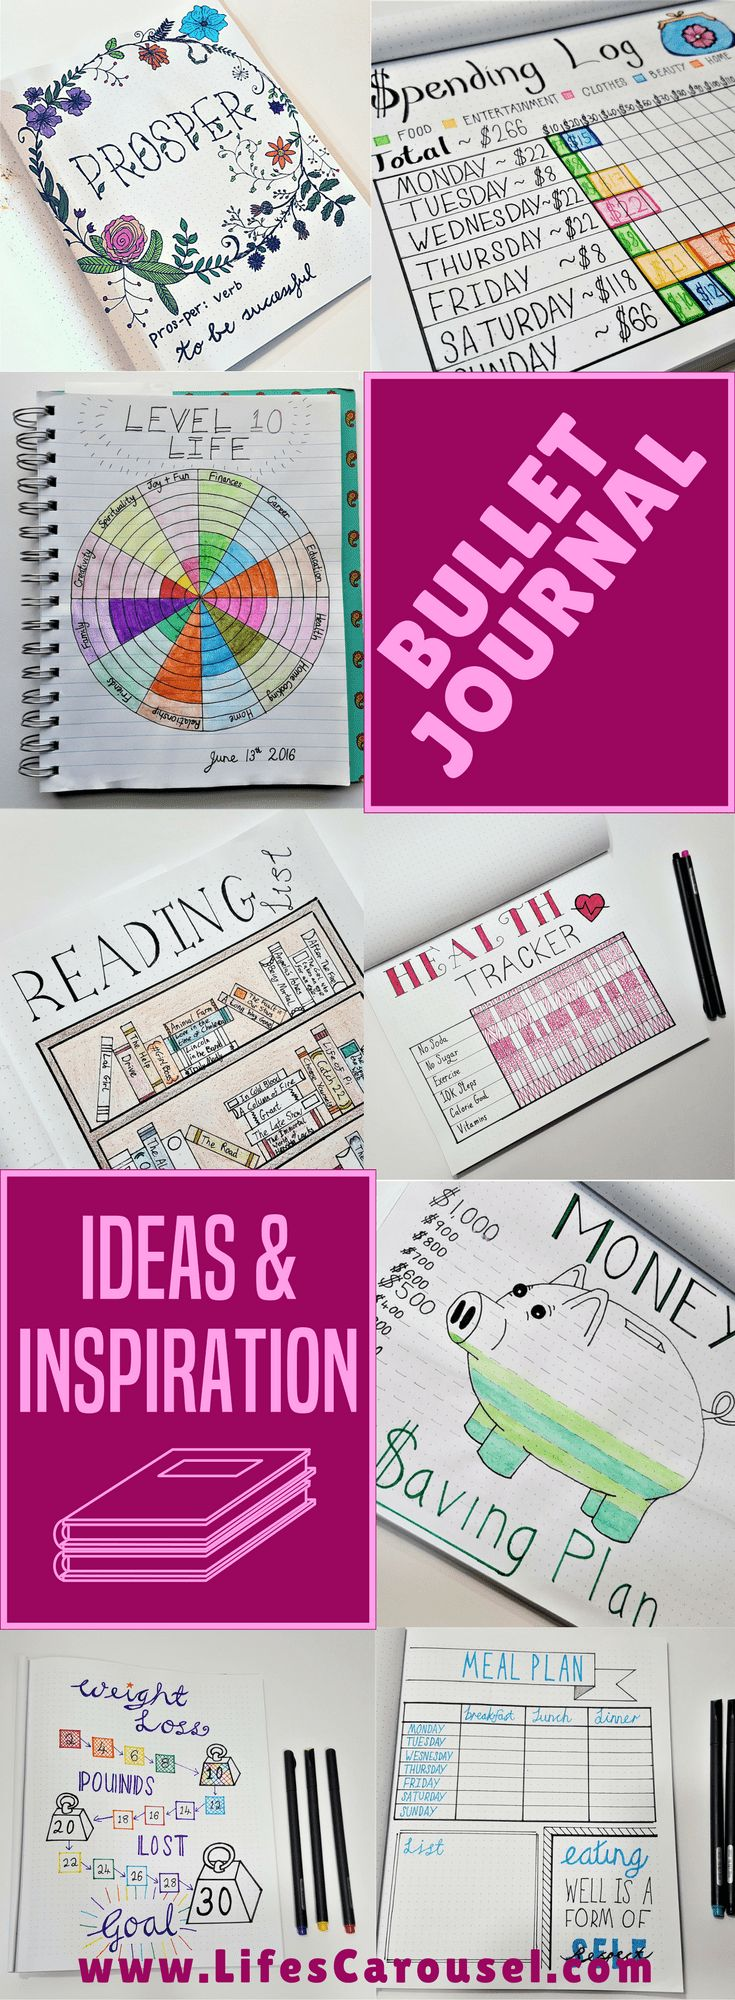 Bullet Journal Ideas   Ideas & inspiration for your Bullet Journal. Layout ideas, how to start a bujo, spreads, tracker, pages and more